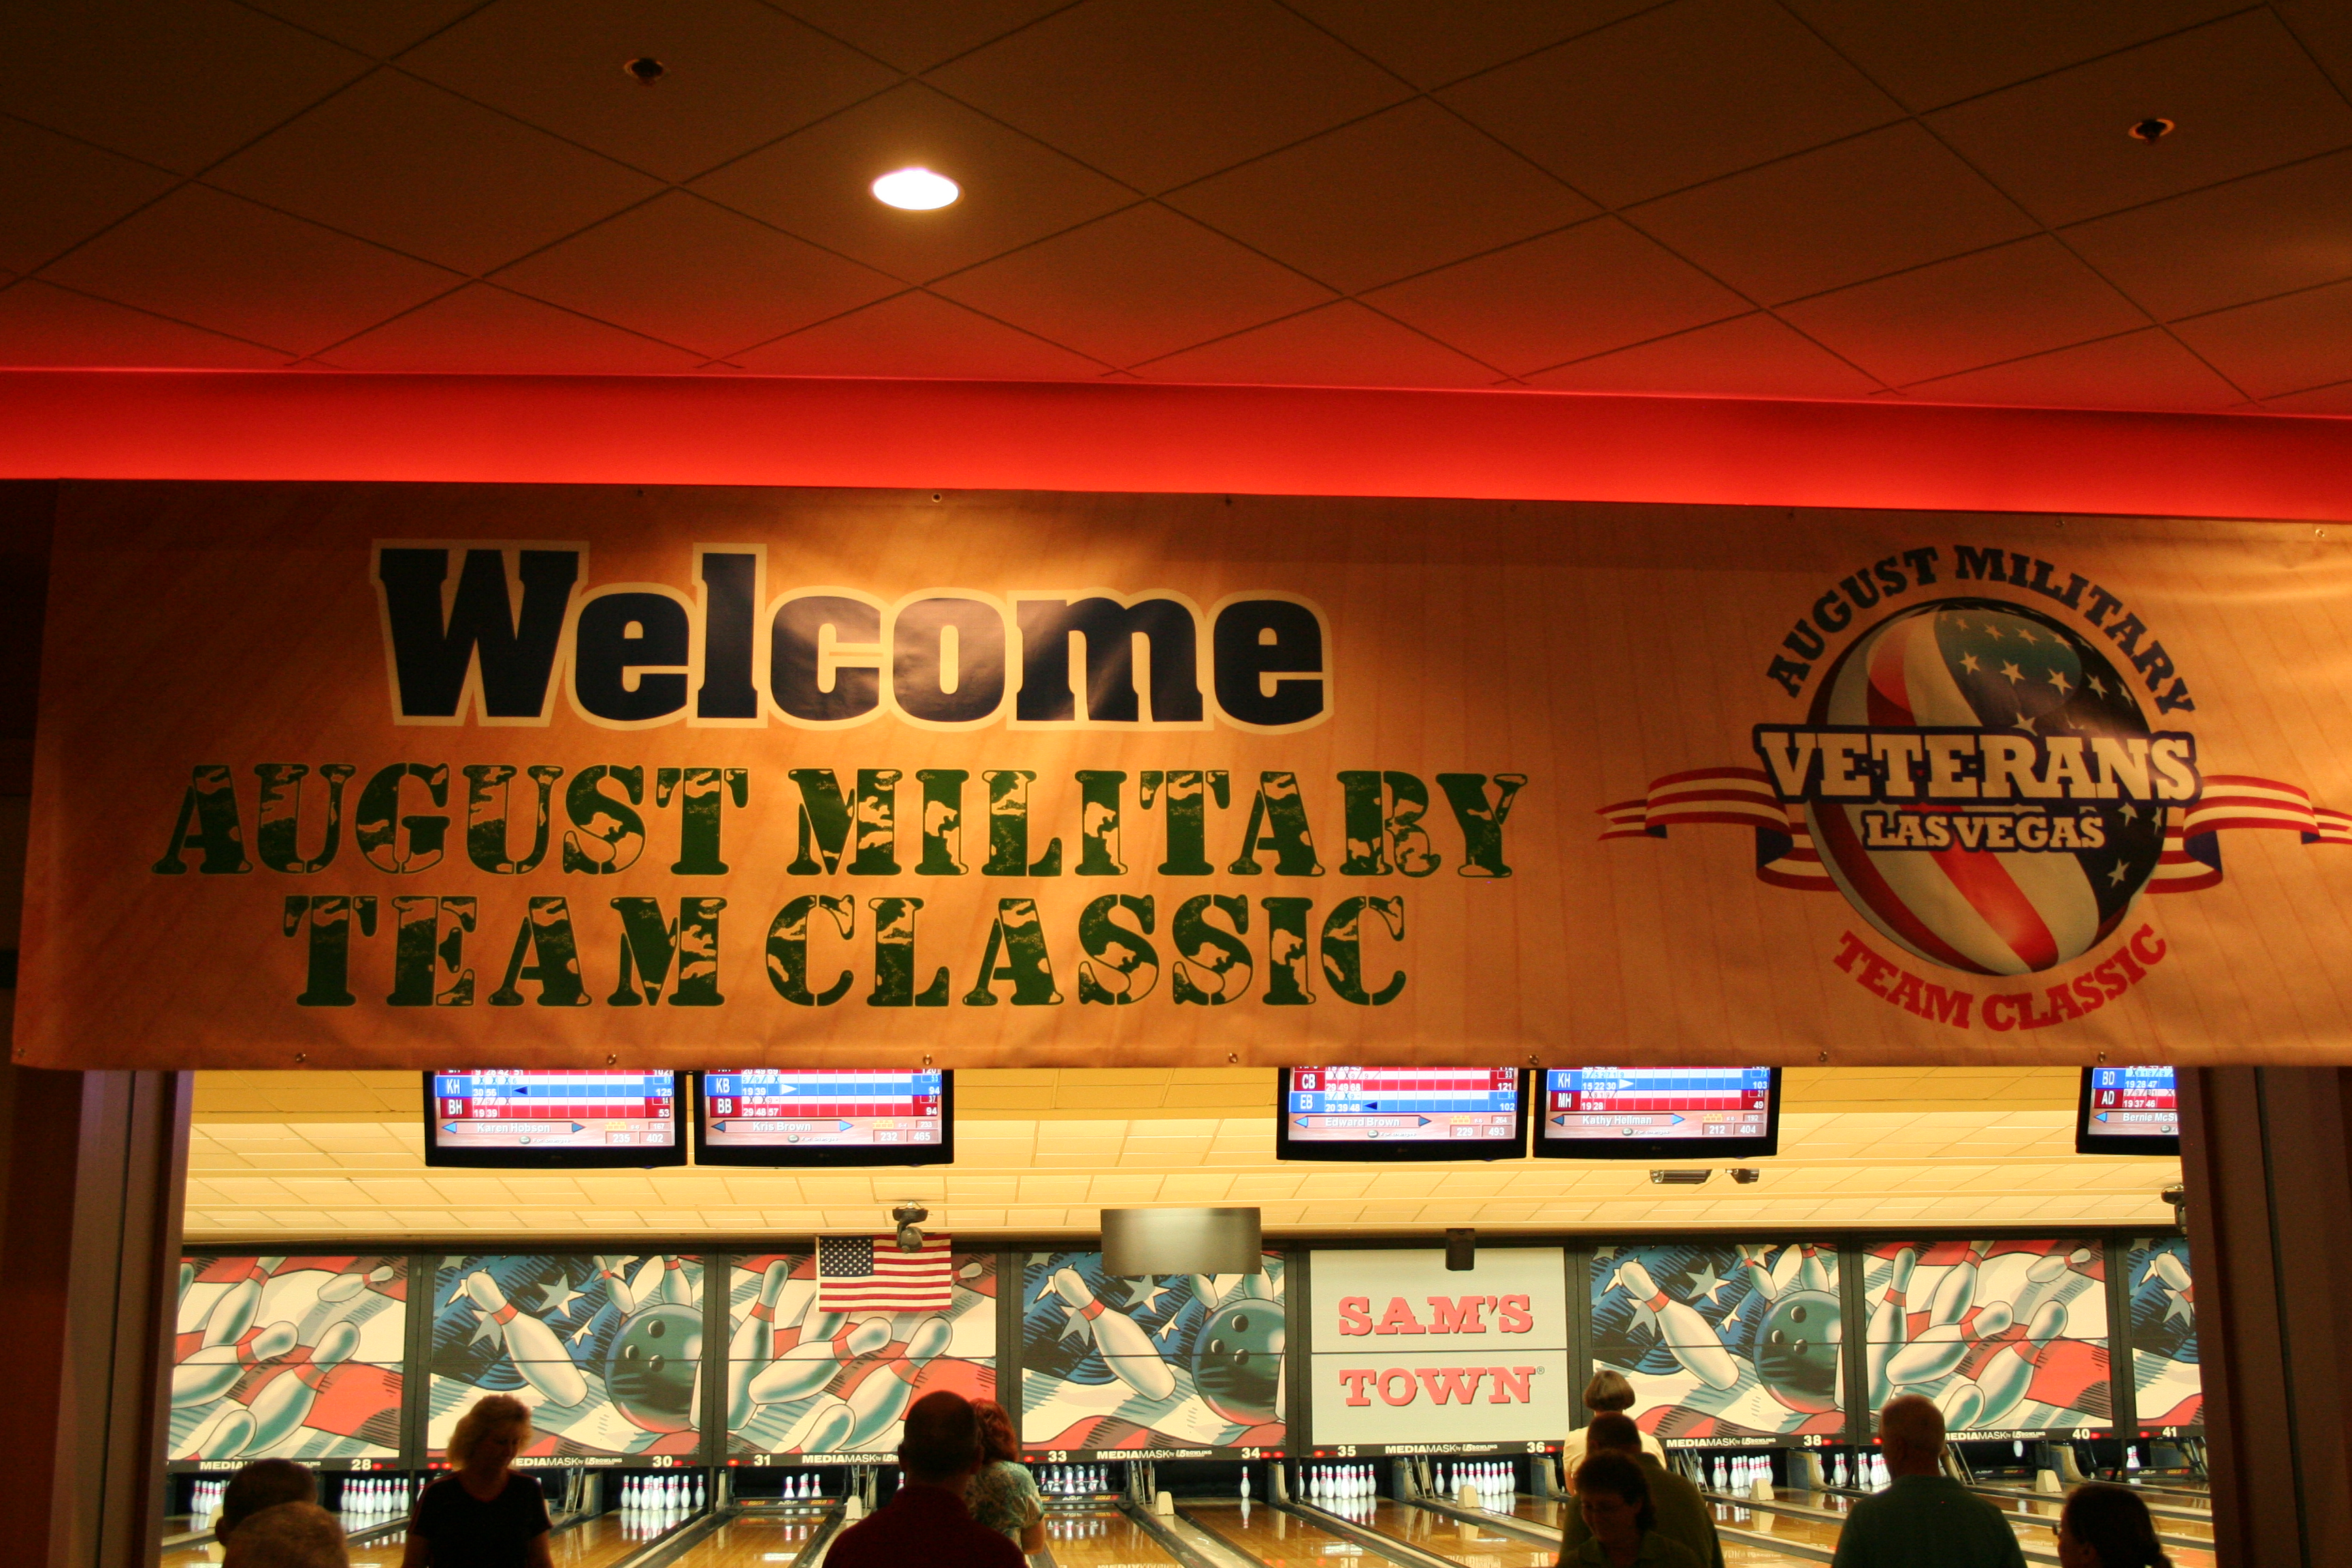 Welcome to the 2013 August Military Team Classic - sold out with 164 teams!